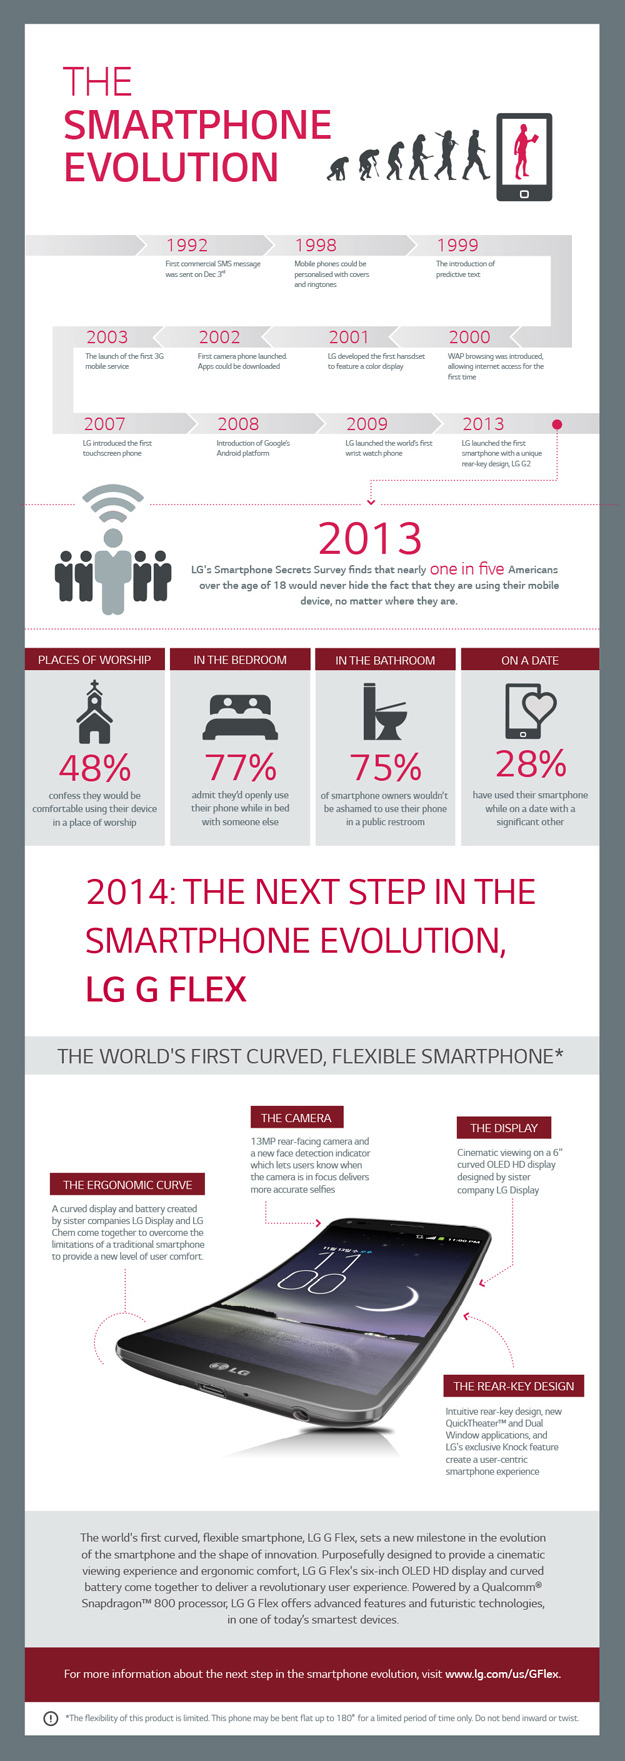 LG infographic (smartphone evolution 001)